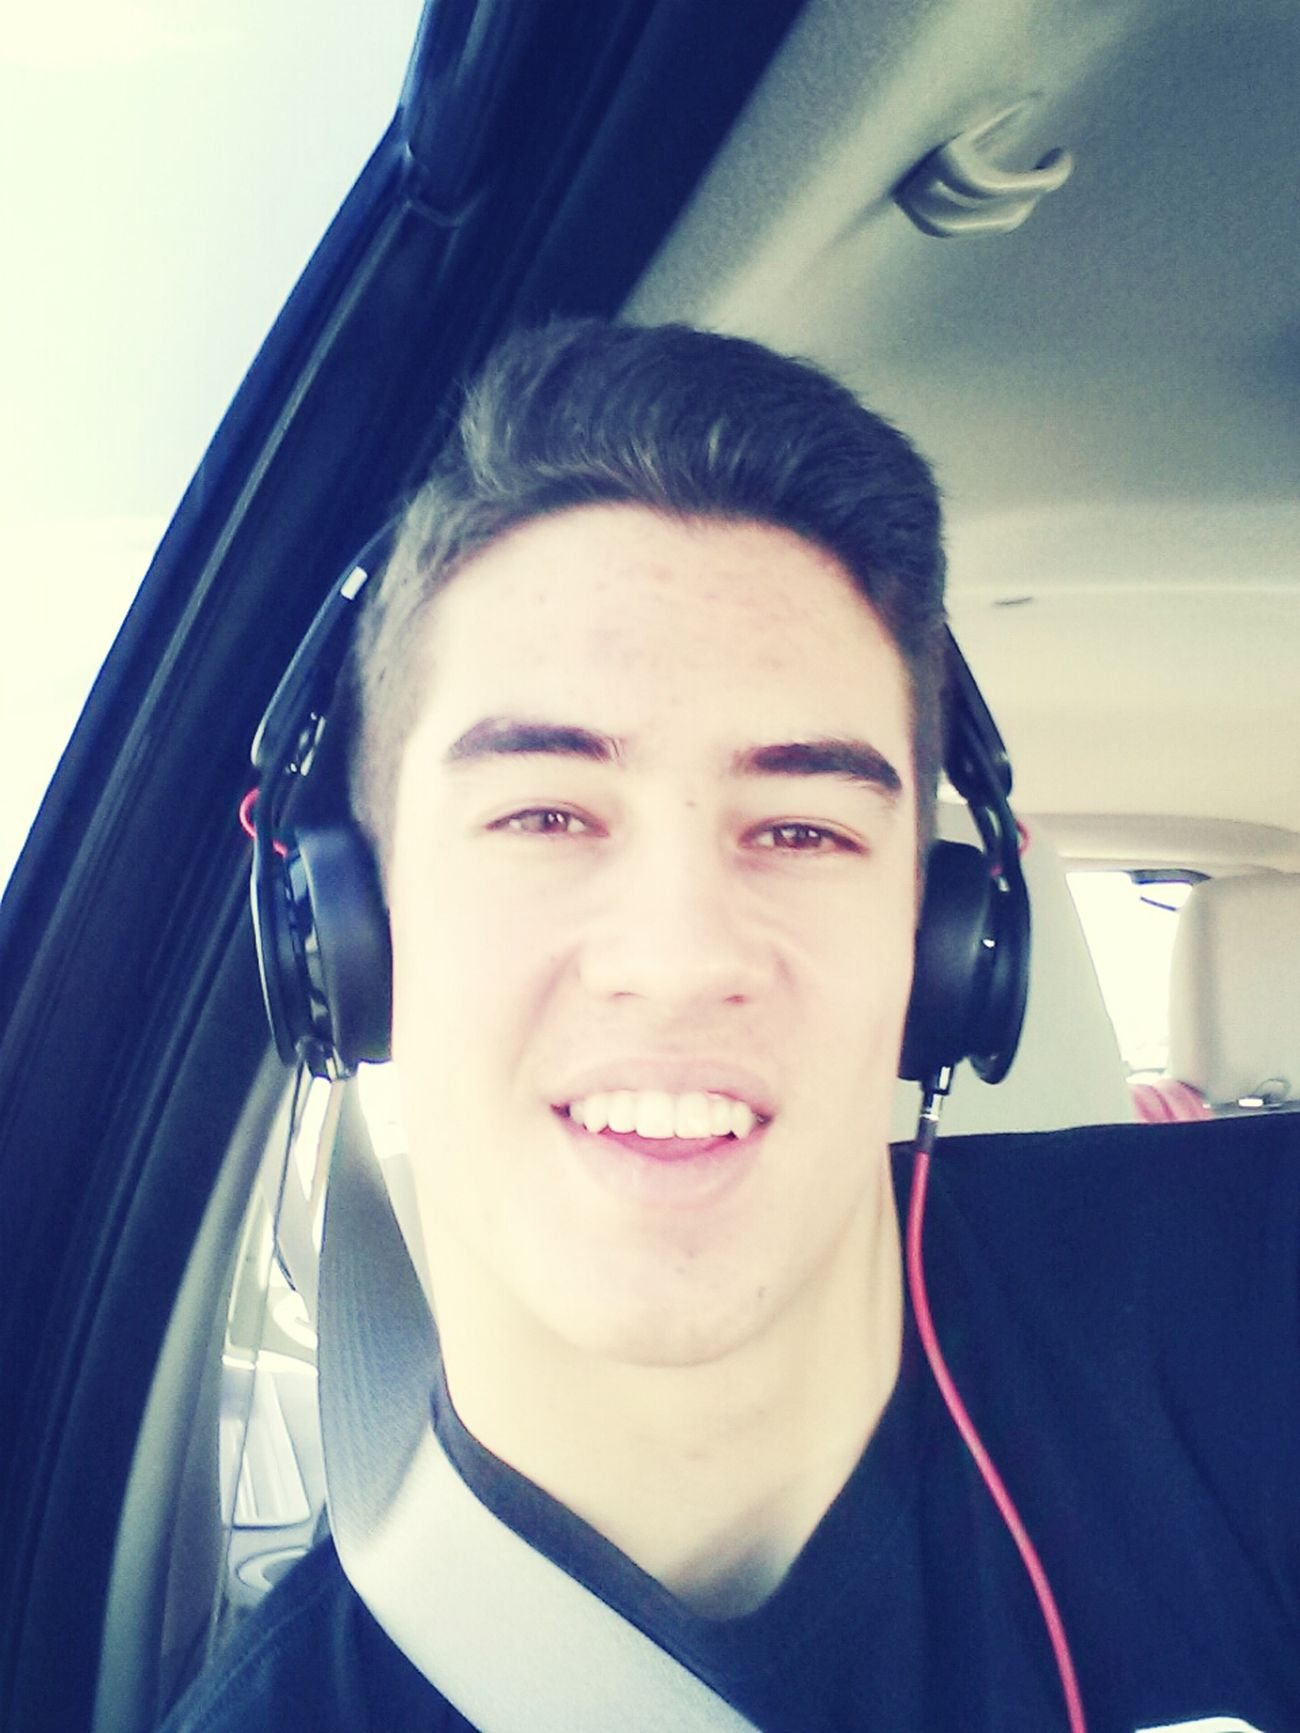 road trip to albuquerque ... bored so i took a selife:) haha